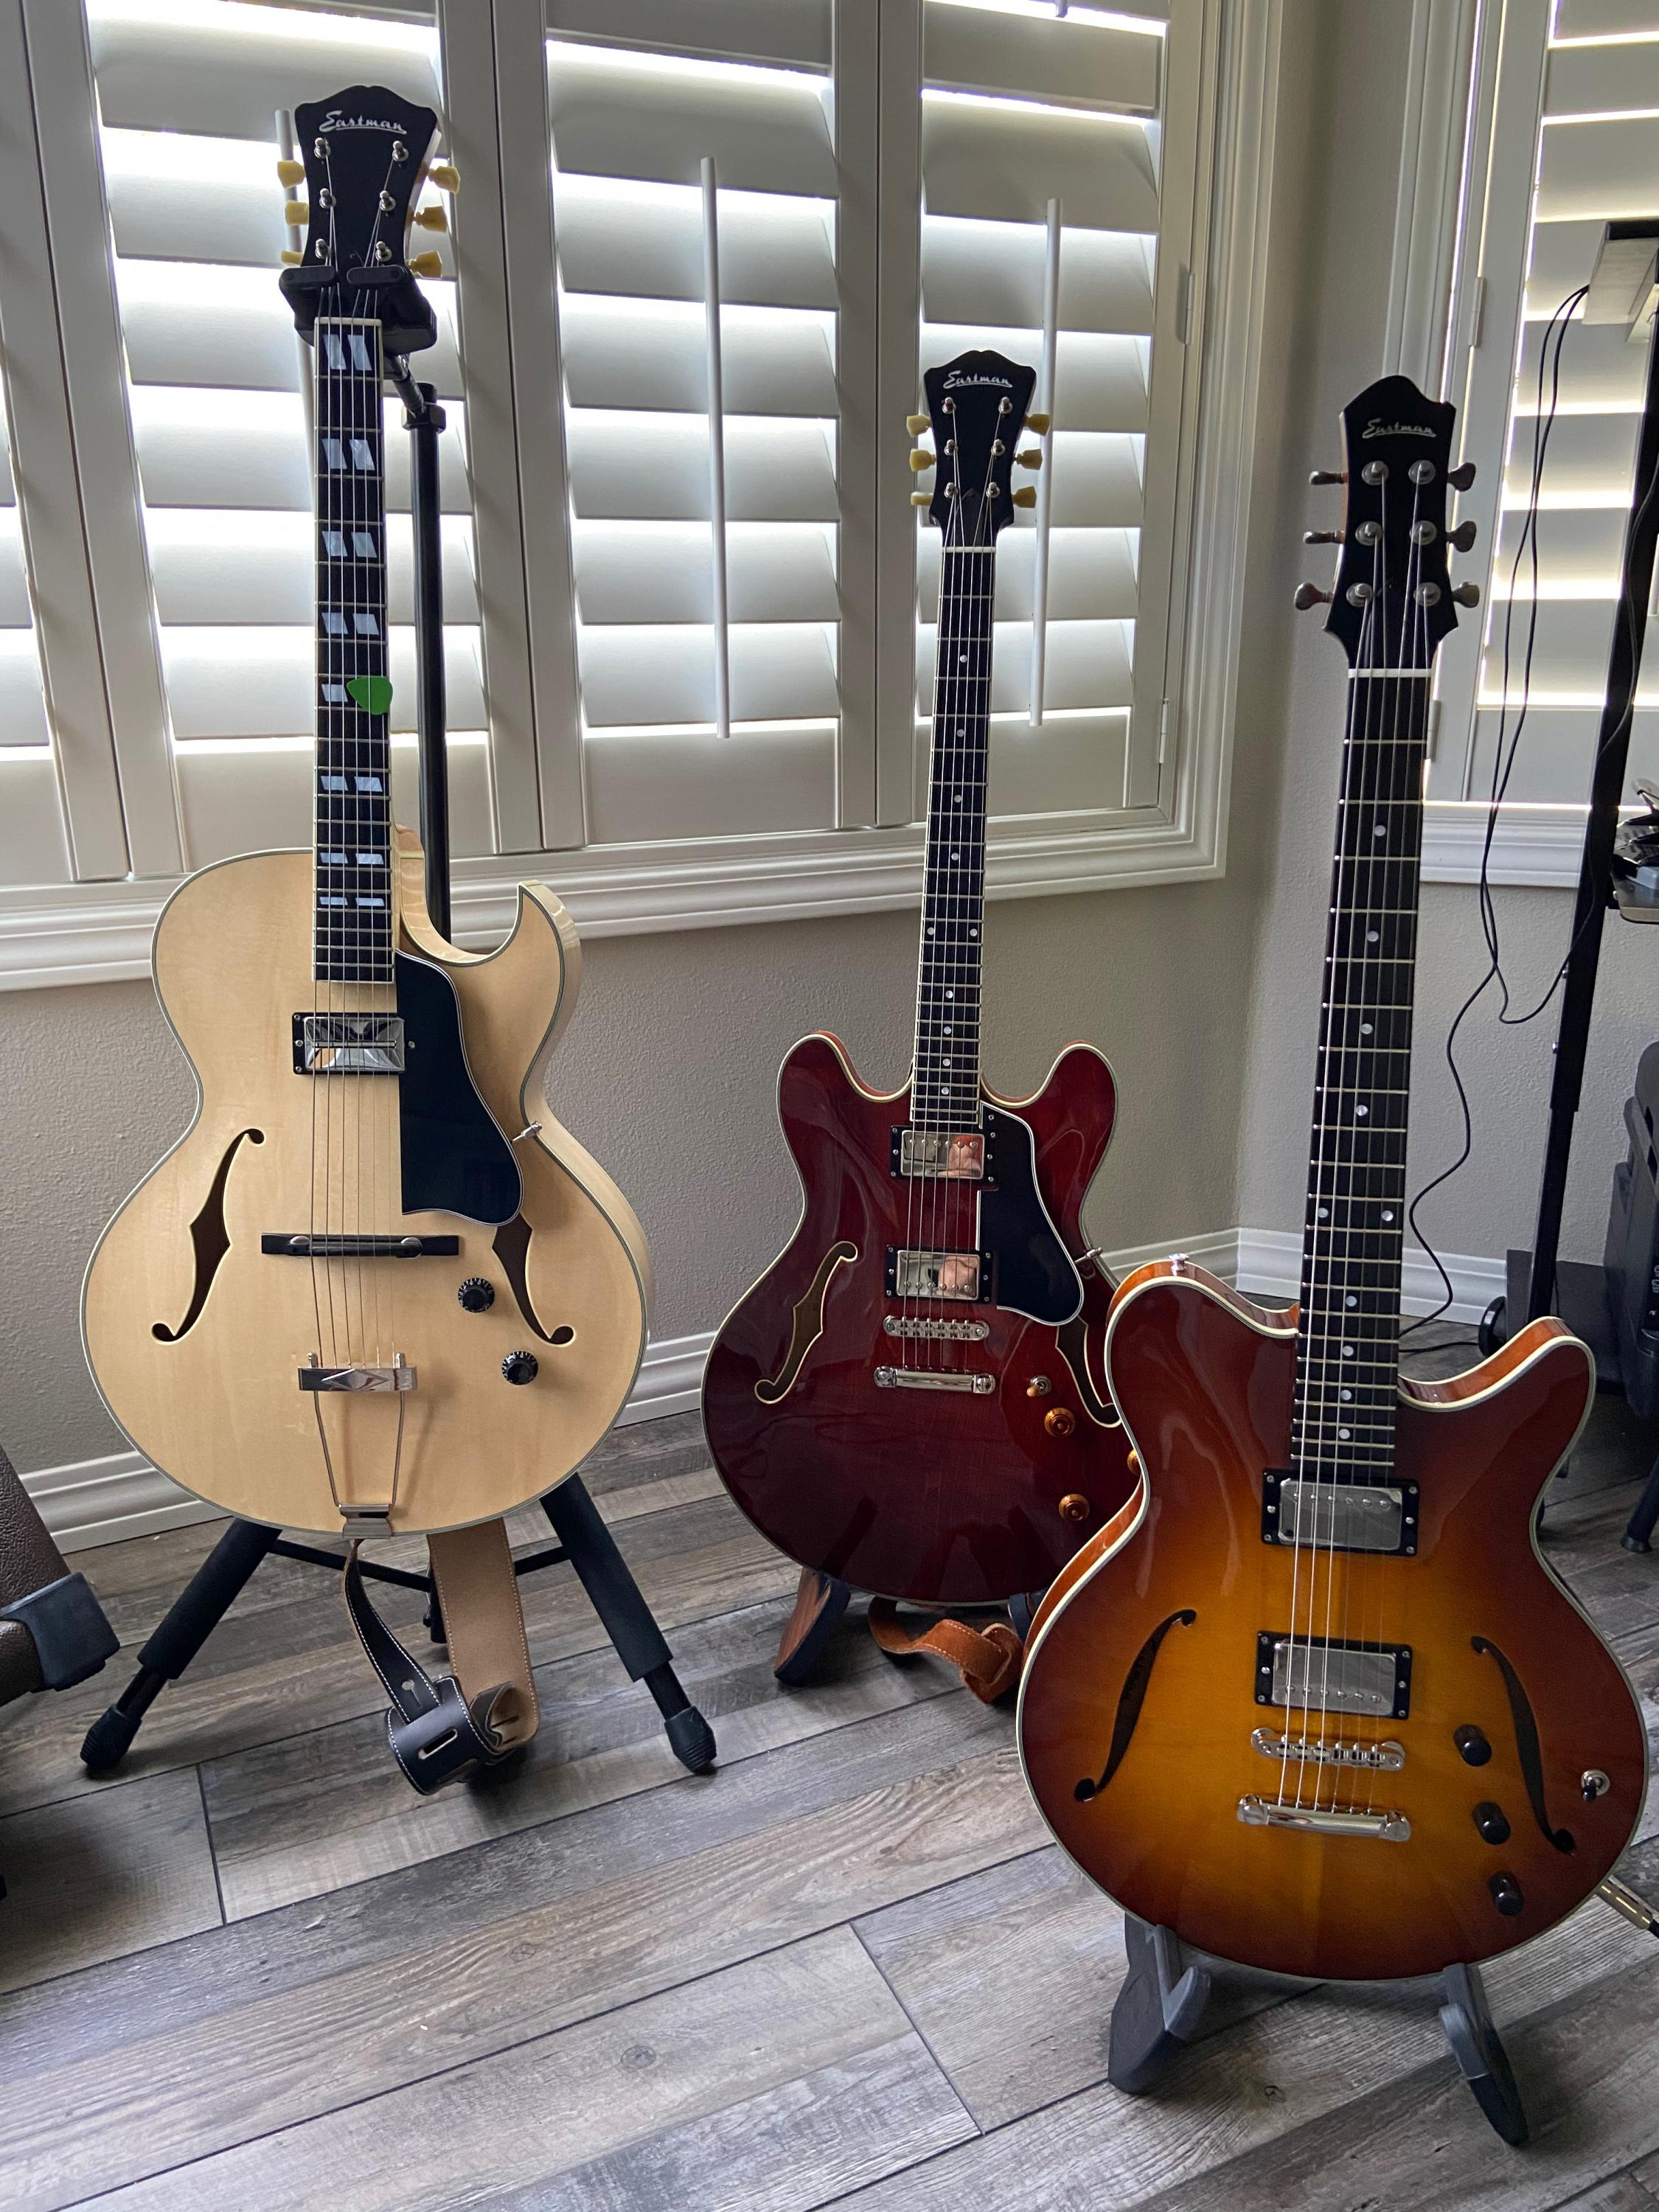 My experience with the Eastman Romeo-3-amigos-jpg